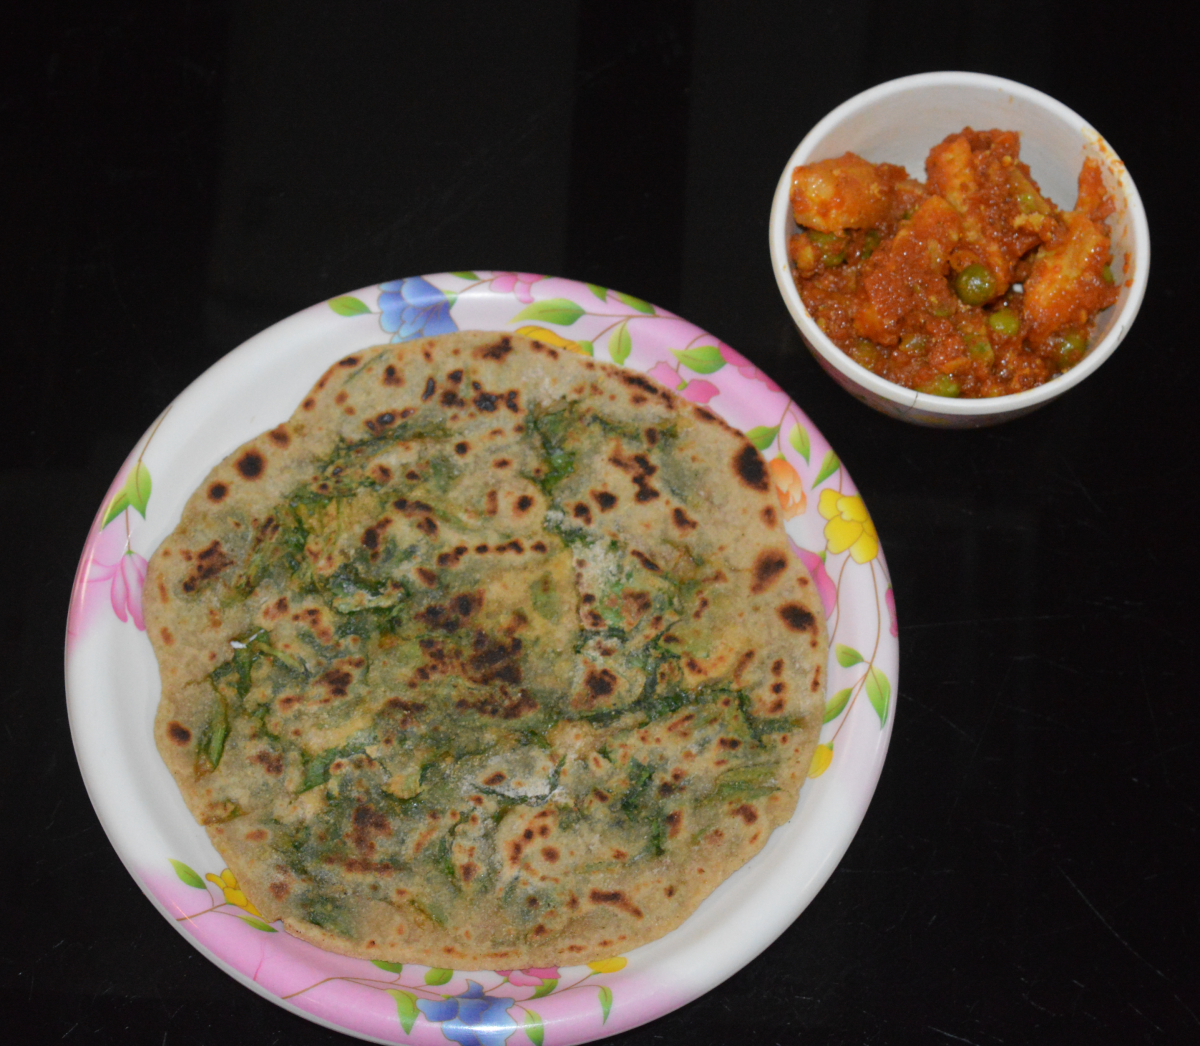 Remove and place it on a serving plate. Similarly, cook the remaining parathas. Serve them hot with a curry or tomato sauce. Enjoy eating them for breakfast or dinner!